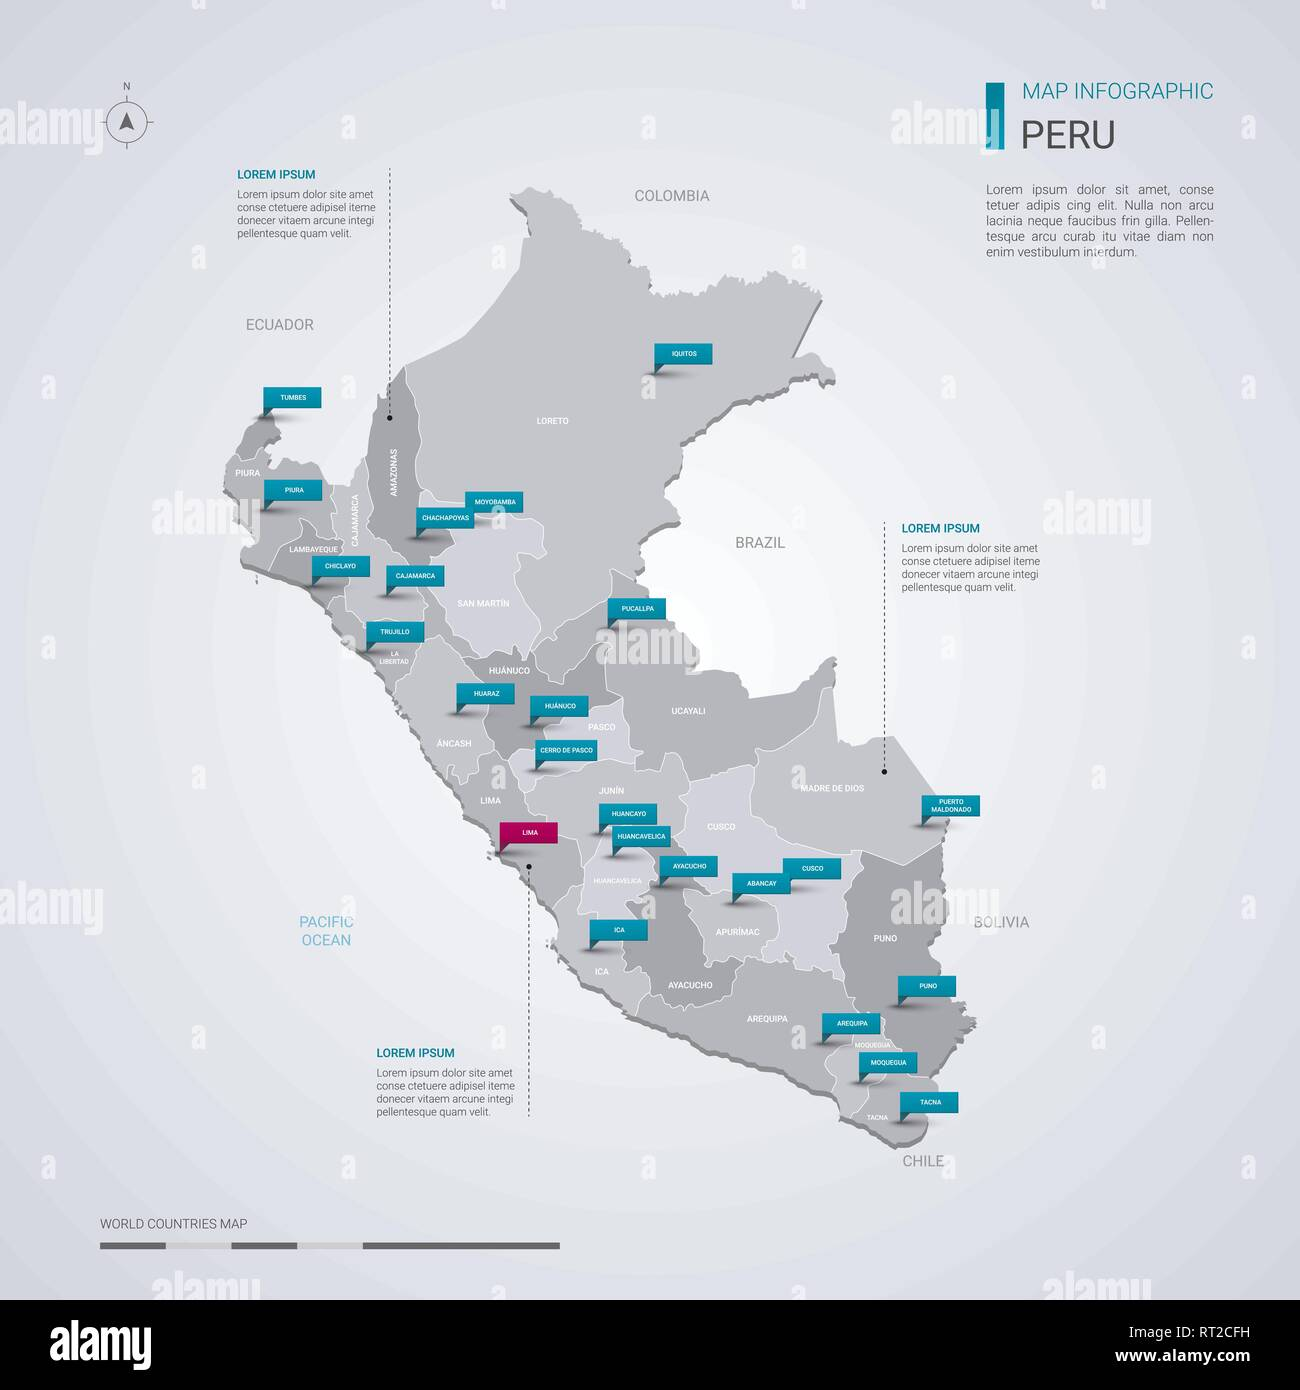 Peru vector map with infographic elements, pointer marks. Editable on